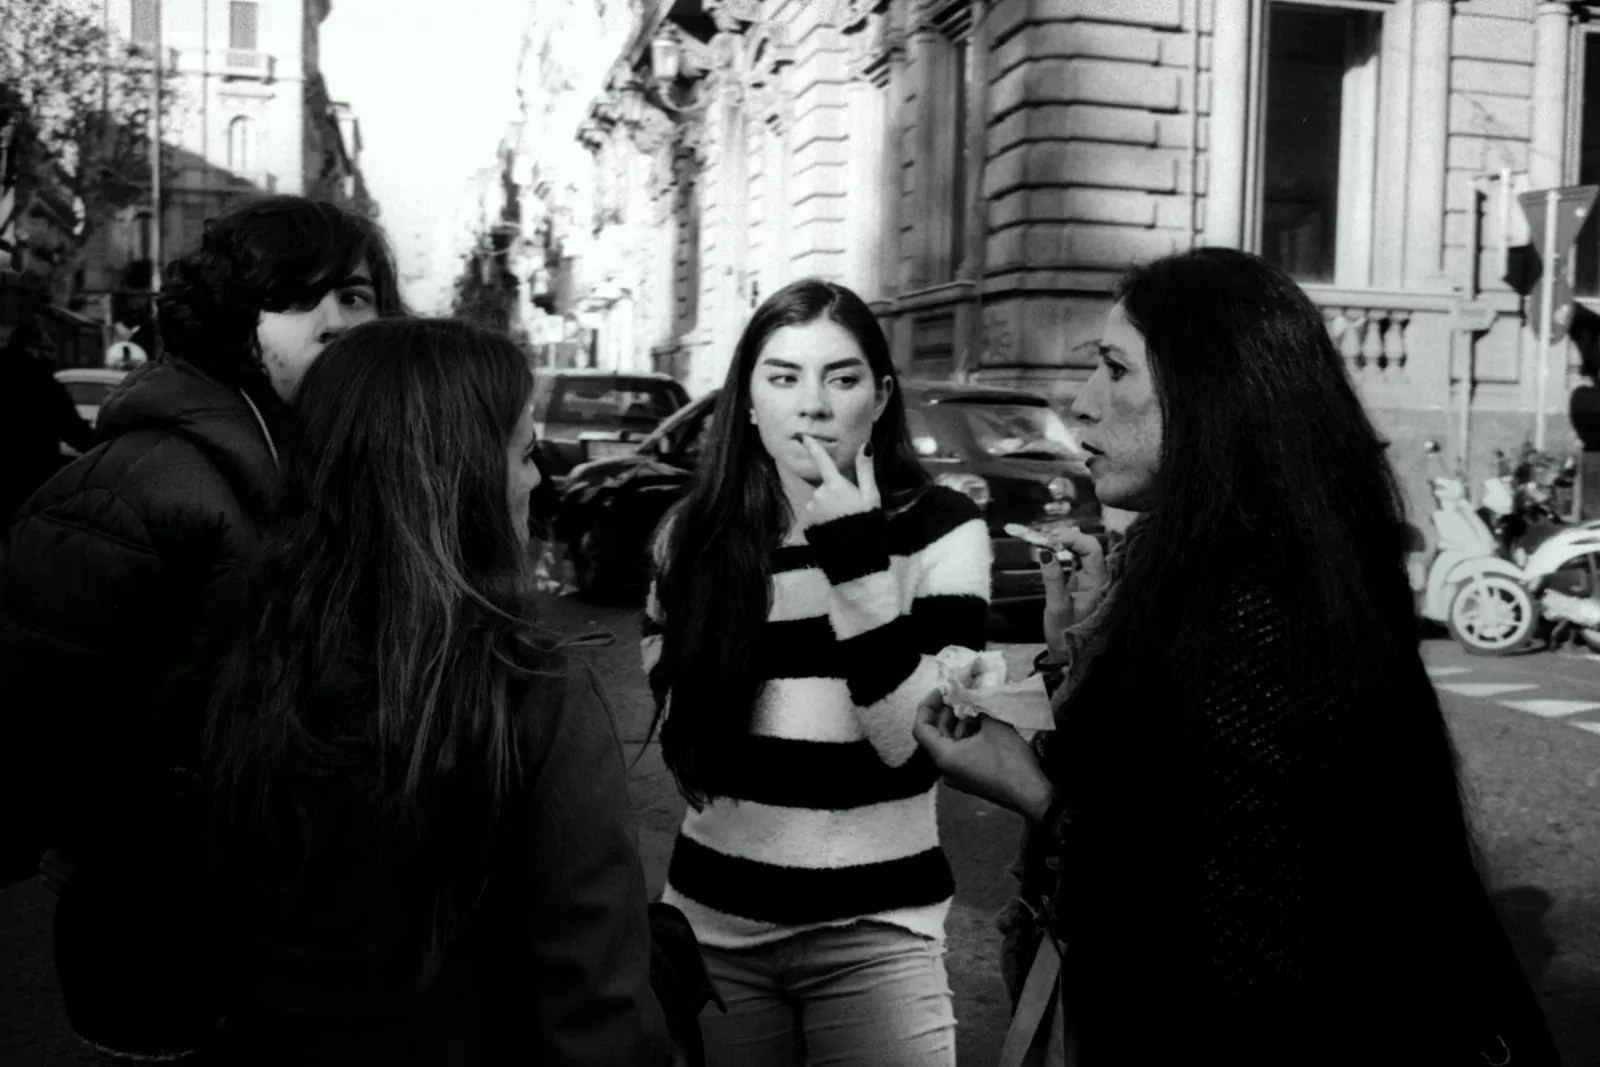 2017 12 24 0034 - In strada con Olympus Trip 35 - Catania Street Photography Session - fotostreet.it